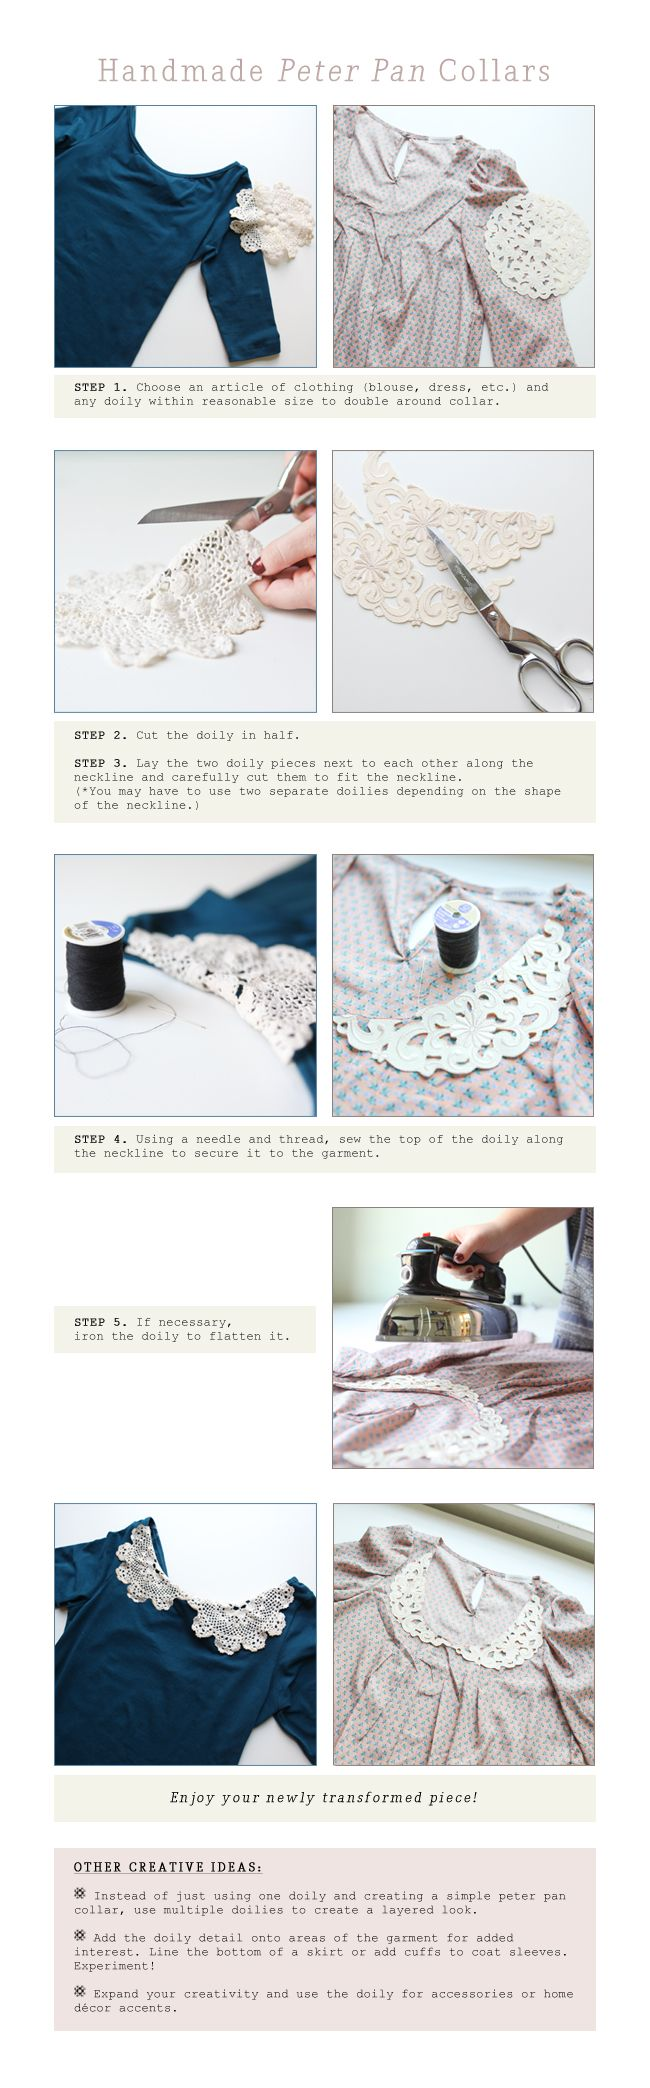 doily collarsDiy Ideas, Fashion Ideas, Diy Crafts, Diy Fashion, Peter Pan Collars, Lace Collar, Peterpan, Earth Day, Vintage Diy